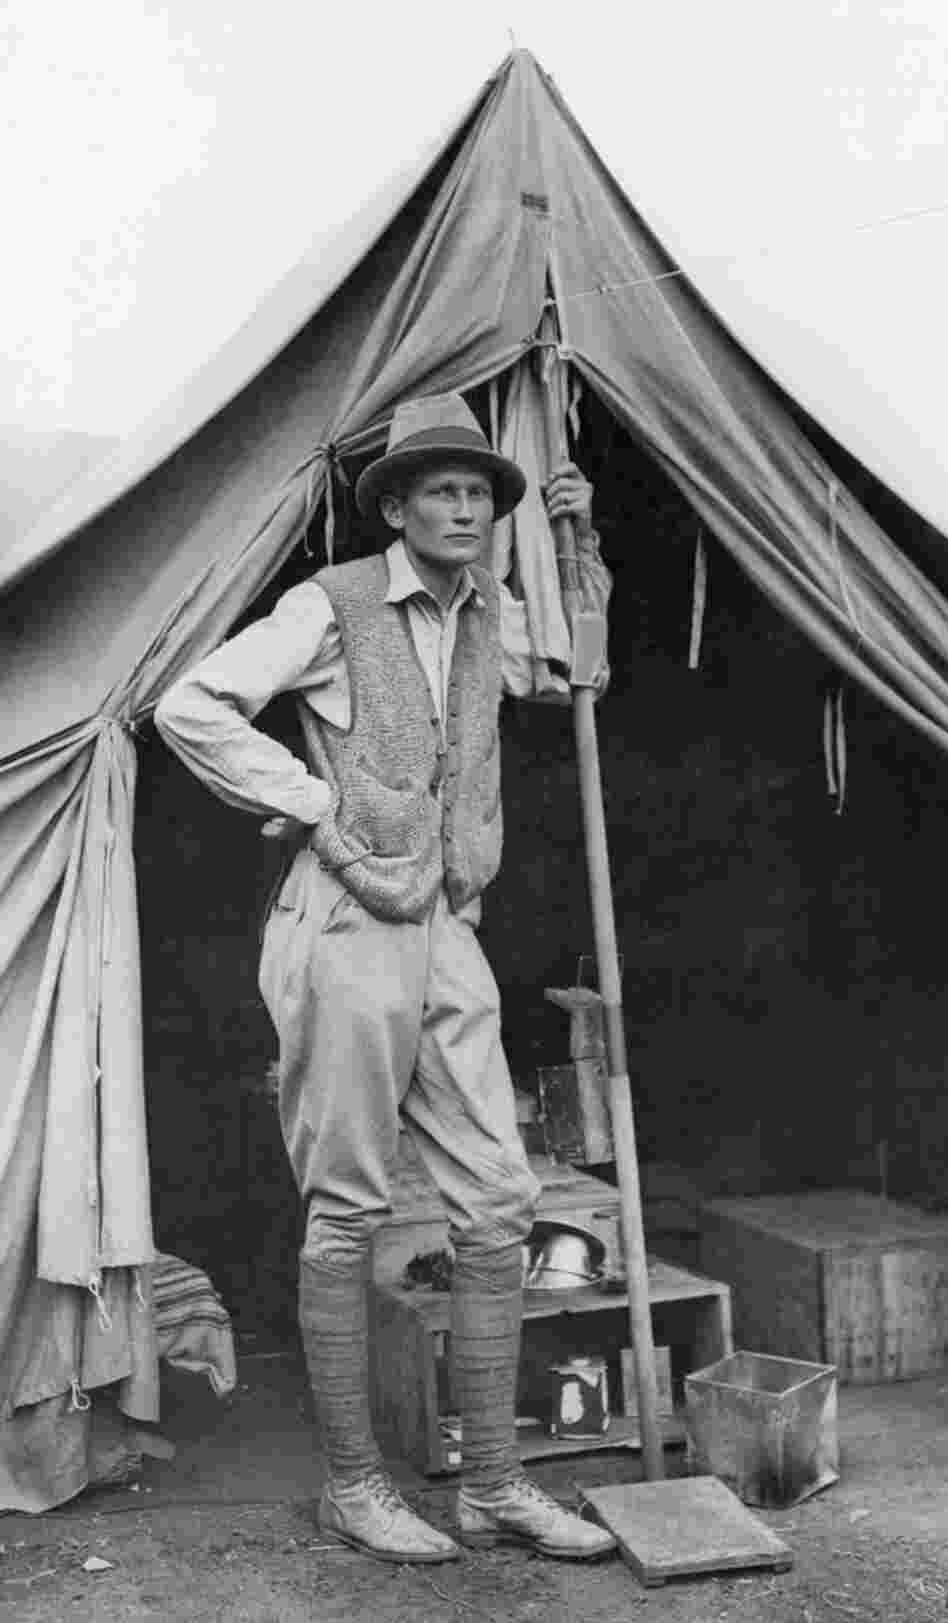 Hiram Bingham stands outside his tent during the 1912 expedition.